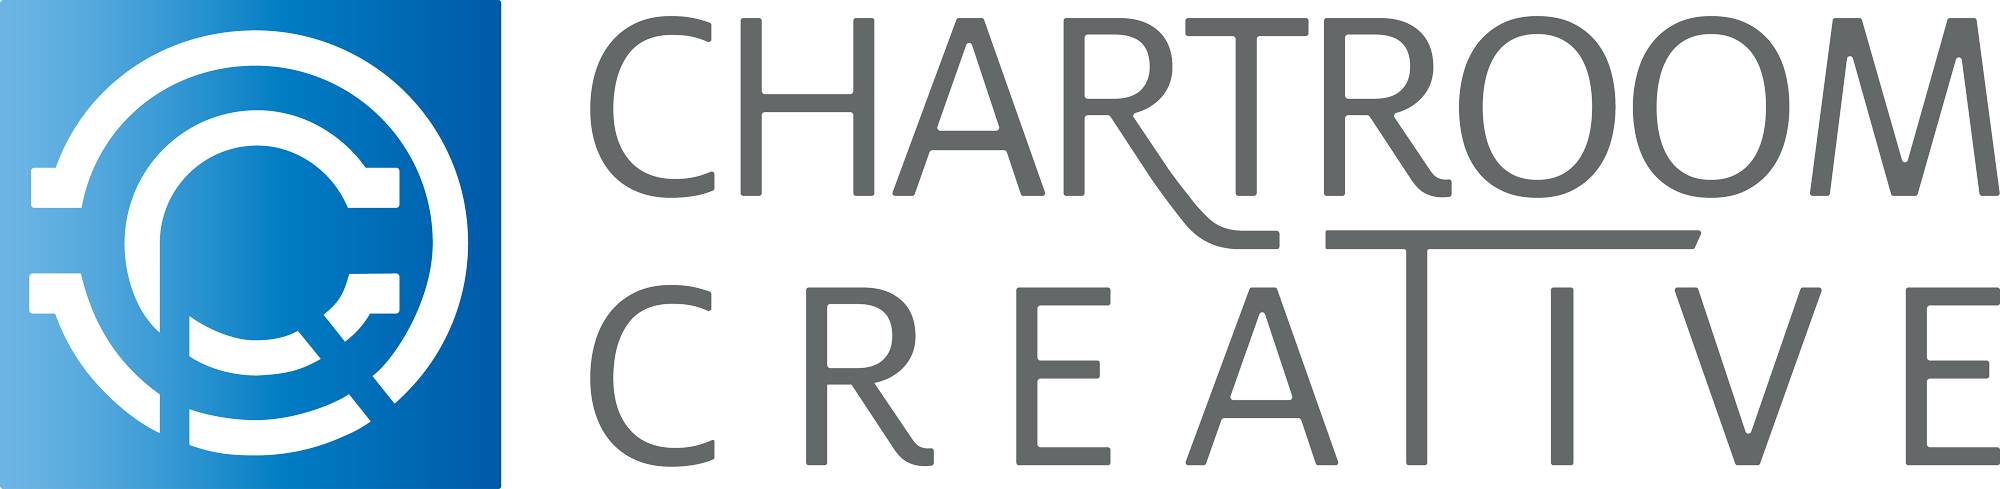 Chart Room Creative, LLC - Logo for chartroomcreative.com | Digital, Creative, and Marketing Agency in Greensboro, NC